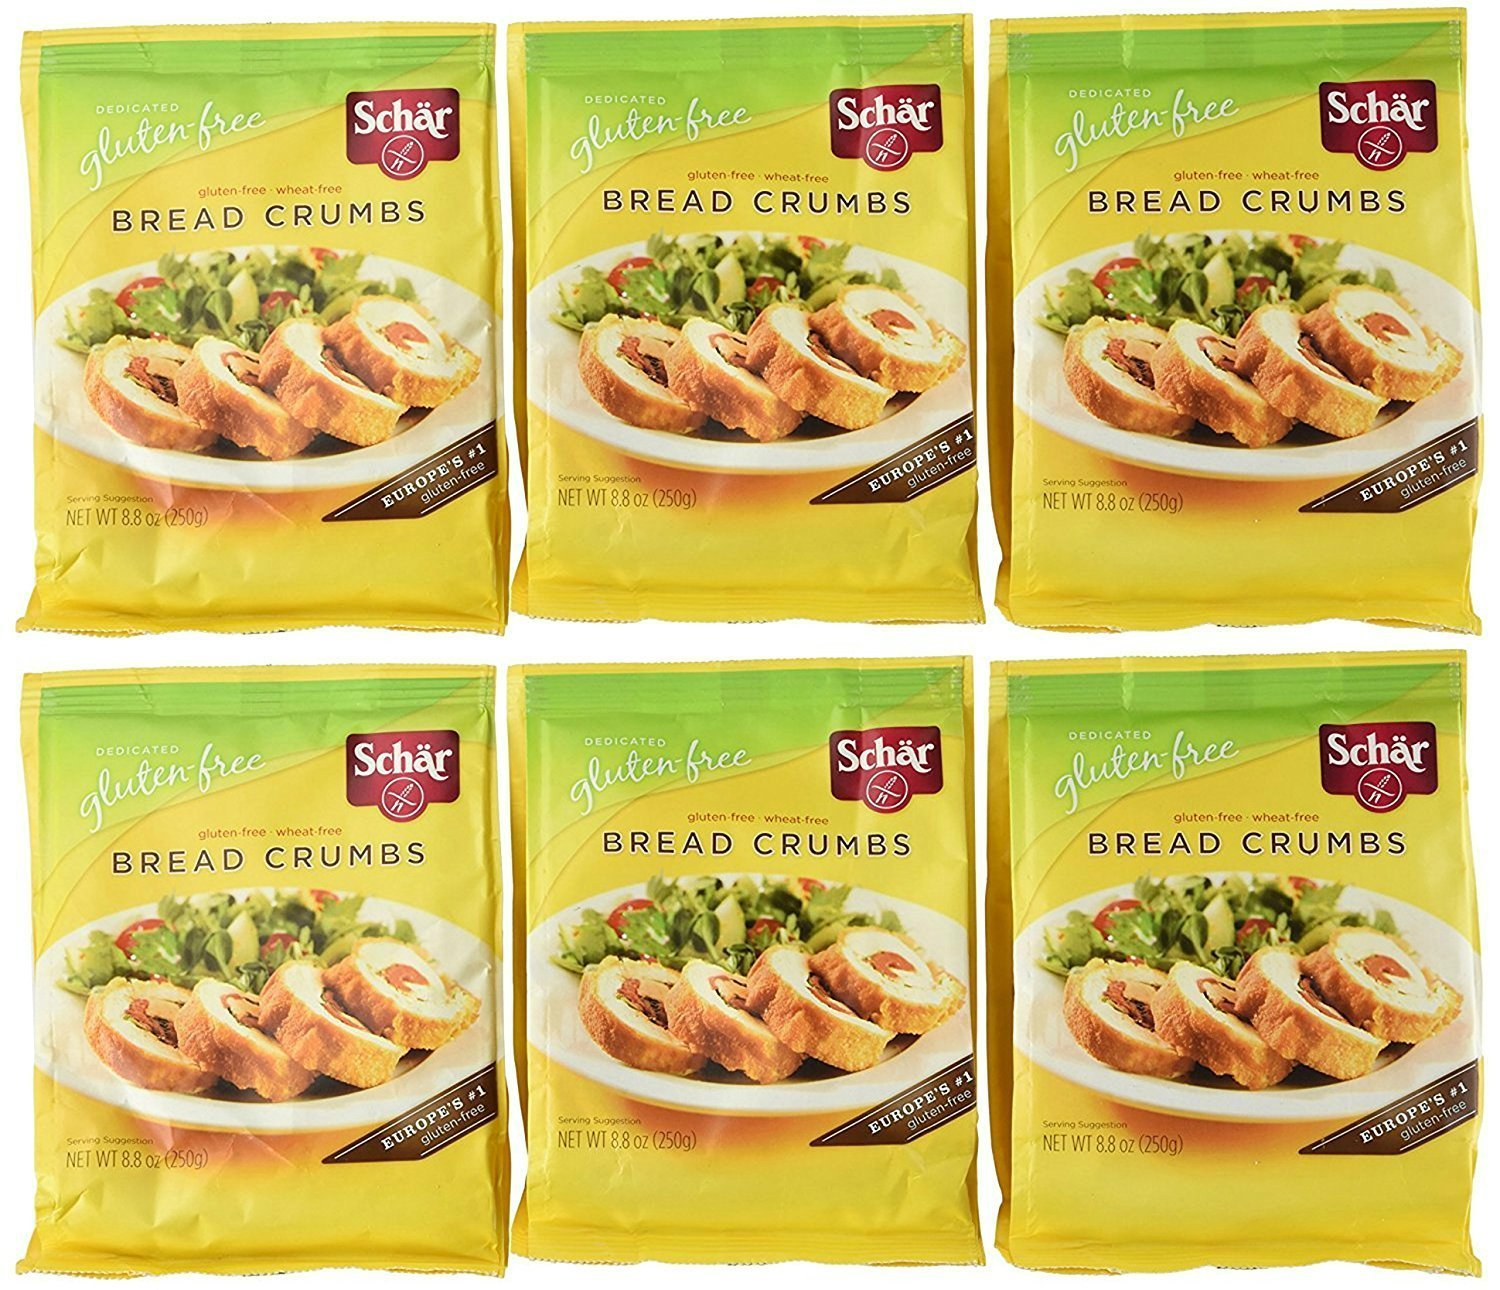 Schar Gluten Free Bread Crumbs, 8.8-Ounce Bags (Pack of 6)